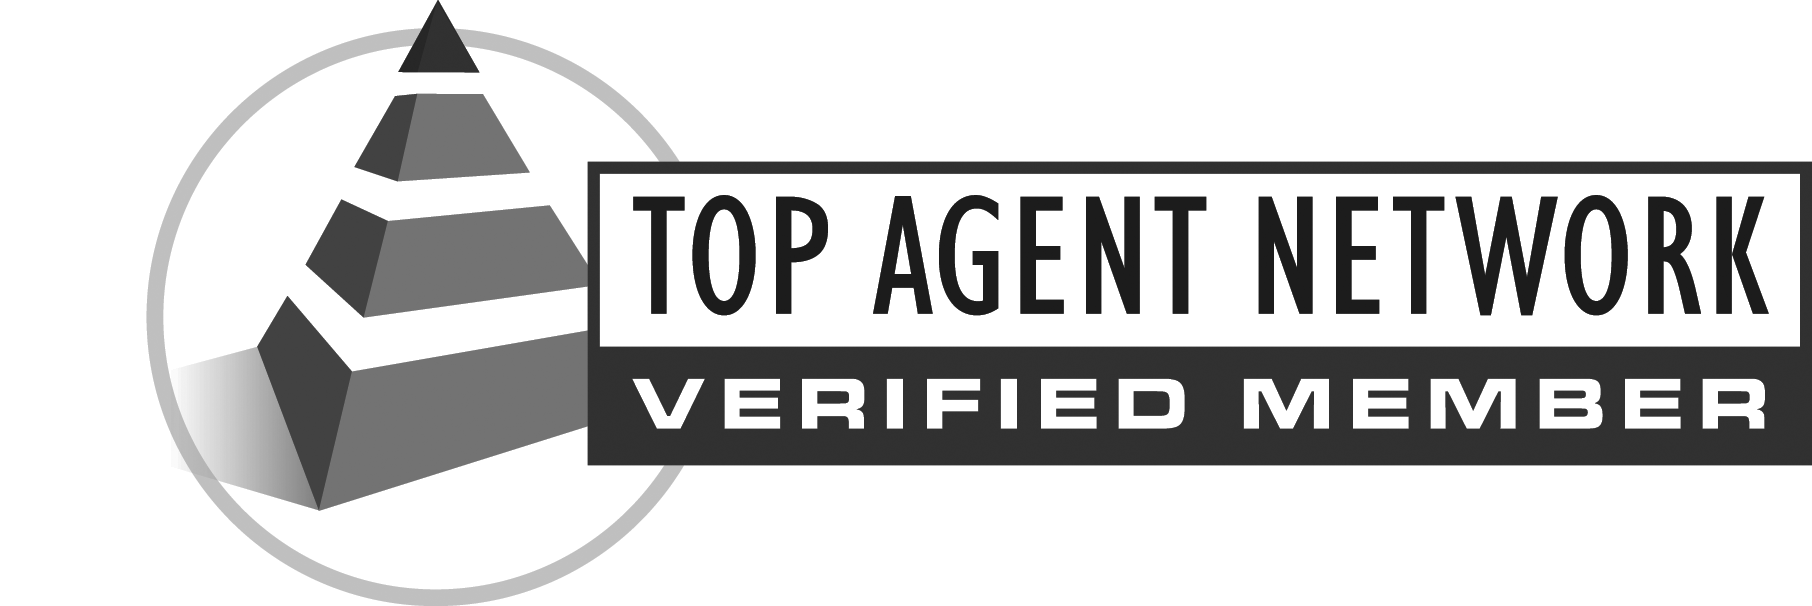 Top Agent Network Logo